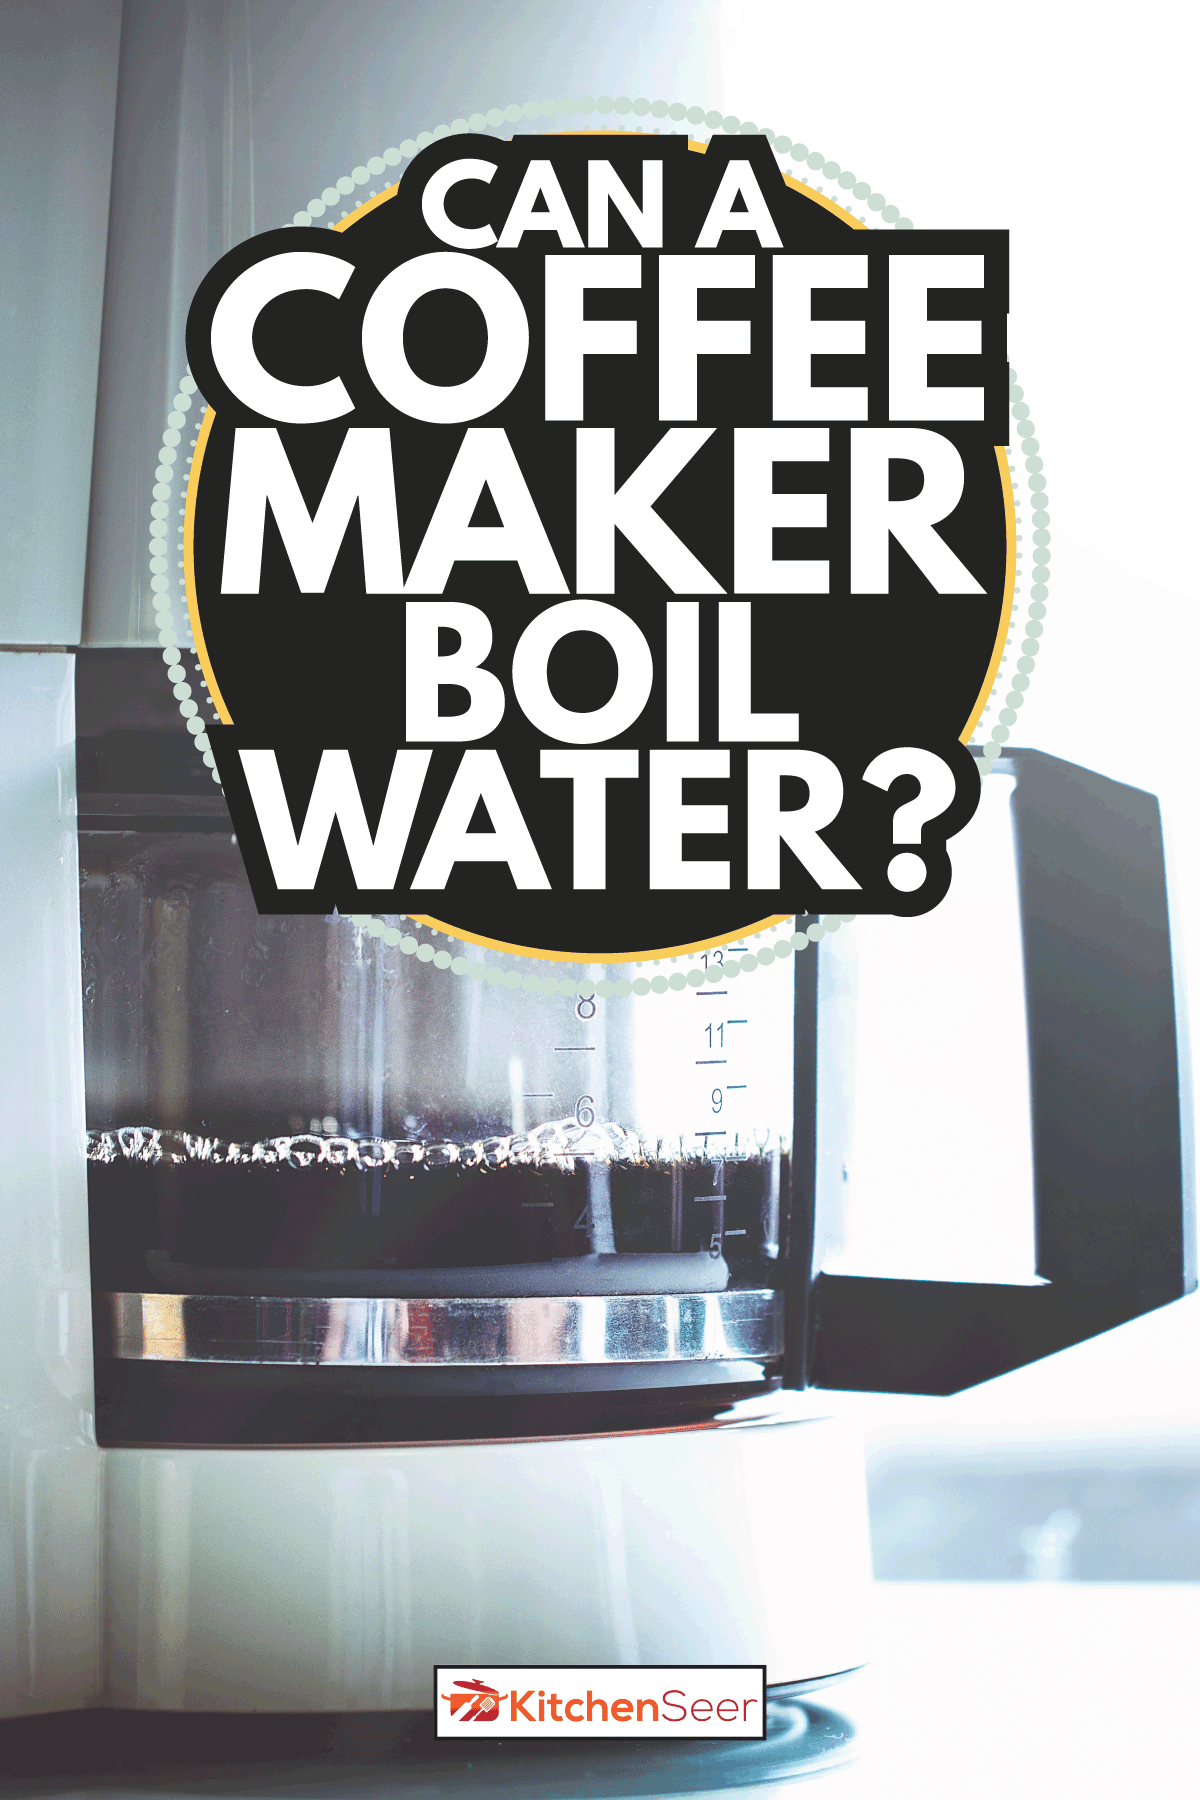 Black coffee machine in modern kitchen from side view. Can A Coffee Maker Boil Water